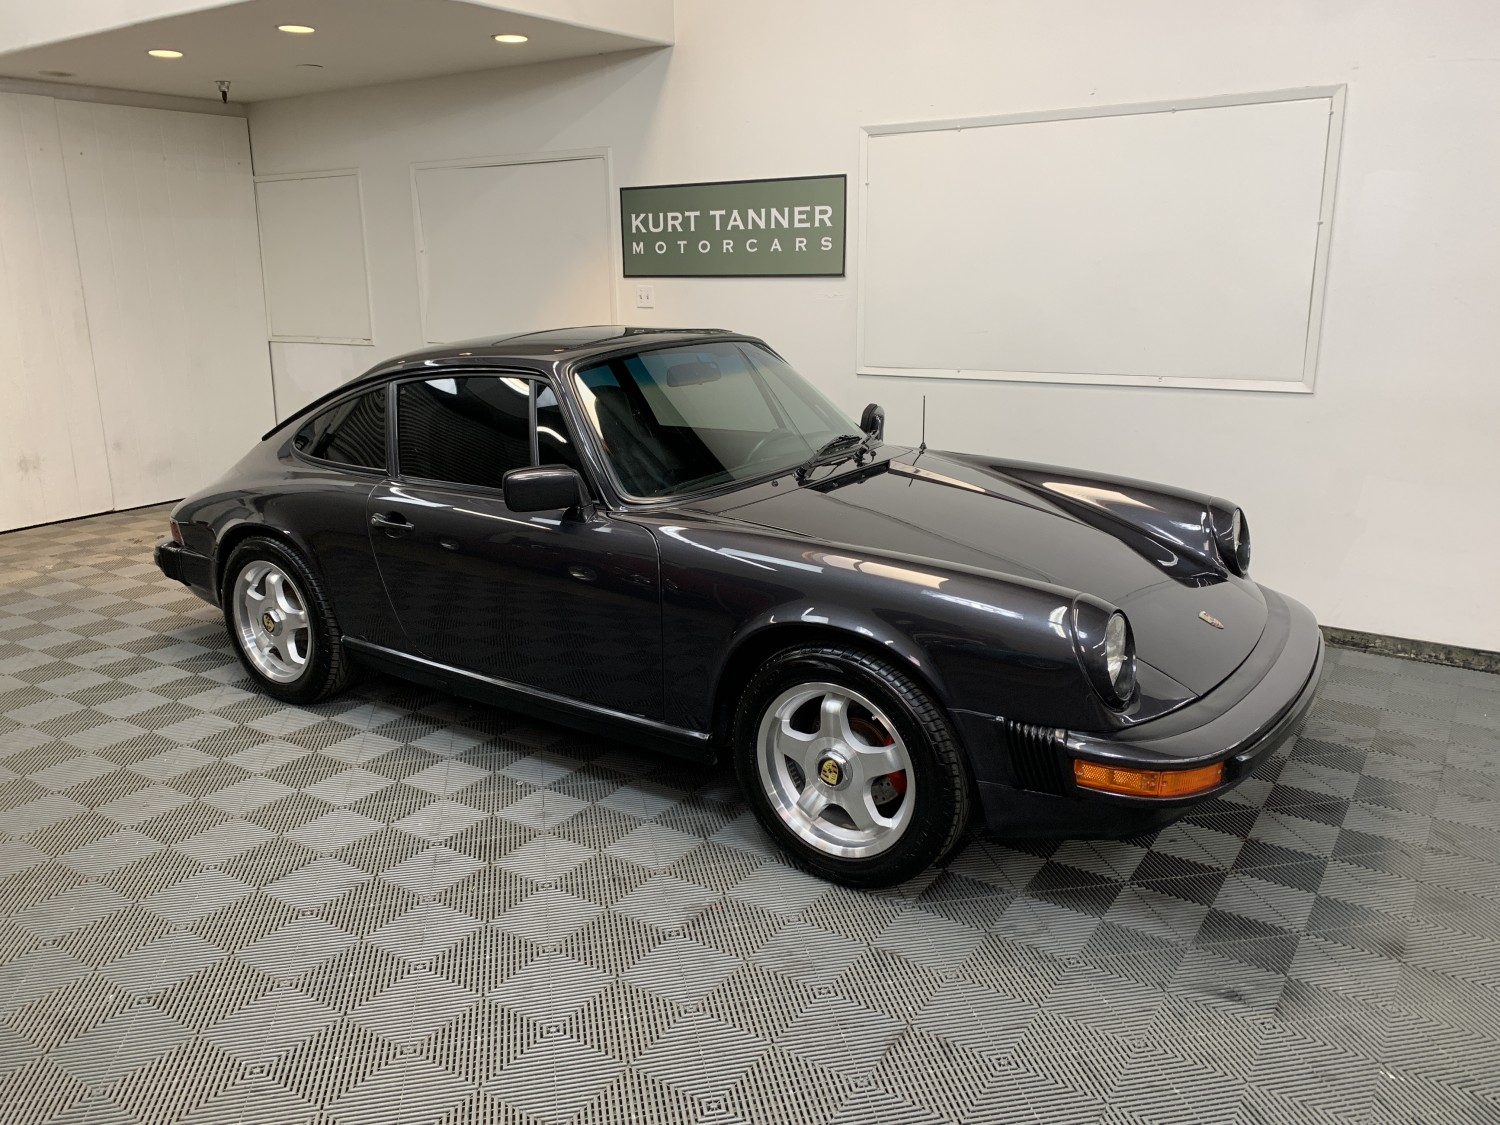 1976 PORSCHE 911-S SUNROOF COUPE. 2.7 LITERS. GRAY ALLOY METALLIC WITH BLACK INTERIOR. 5-SPEED, ALLOY WHEELS. COSMETICALLY AND MECHANICALLY RESTORED. RUSTFREE, ACCIDENT-FREE CAR.